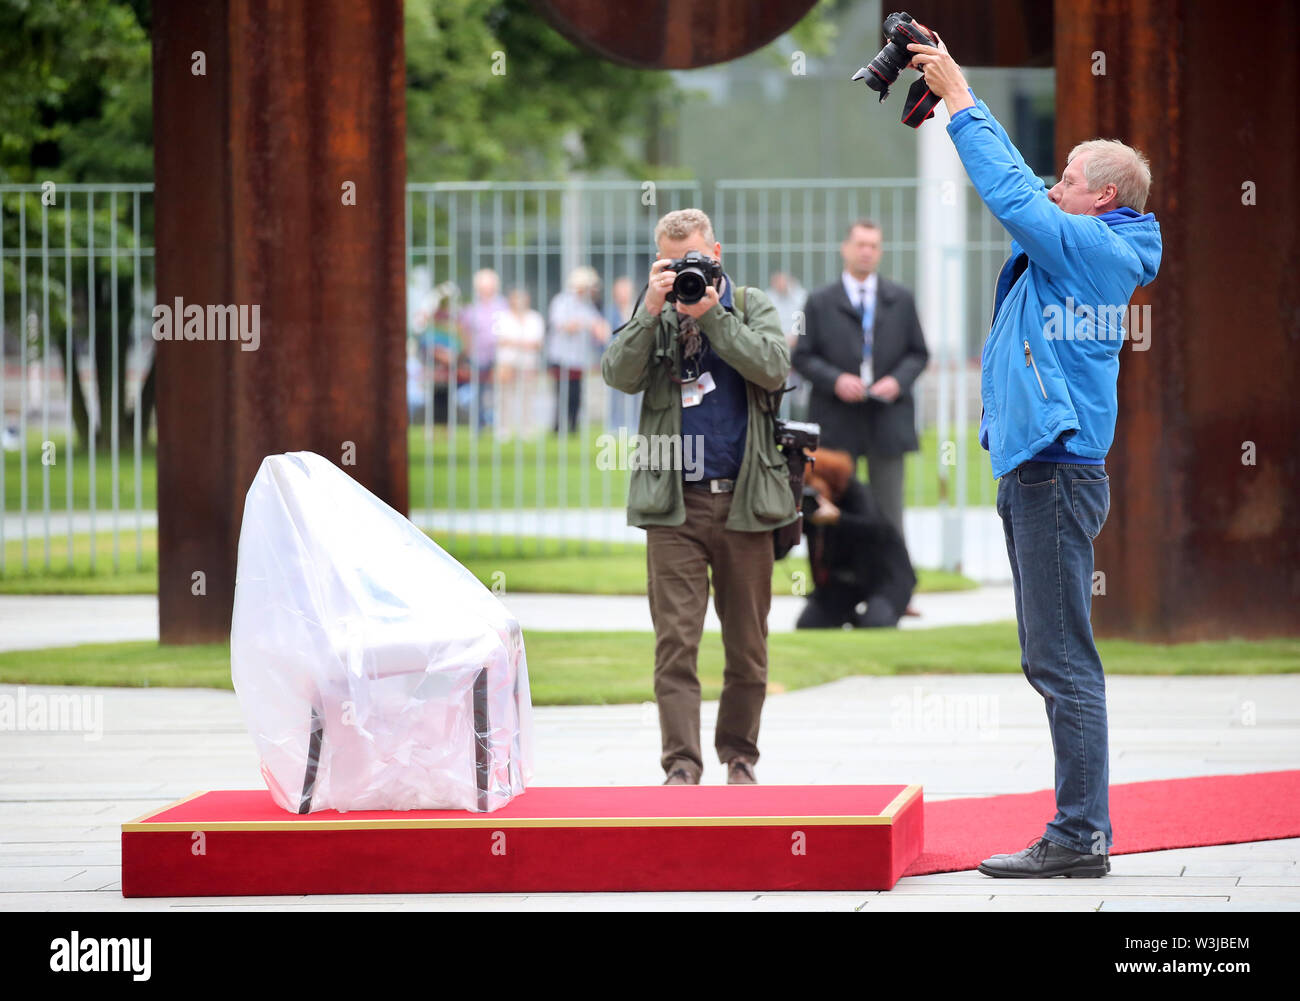 Berlin, Germany. 16th July, 2019. Journalists in the Federal Chancellery's Court of Honour document chairs wrapped in rain gear on which Chancellor Merkel and the Prime Minister of Molda, Sandu, will watch the national anthems play. After several tremors during public appearances such as this, Merkel performed the ceremony for the first time last week, partly sitting down. Credit: Wolfgang Kumm/dpa/Alamy Live News - Stock Image